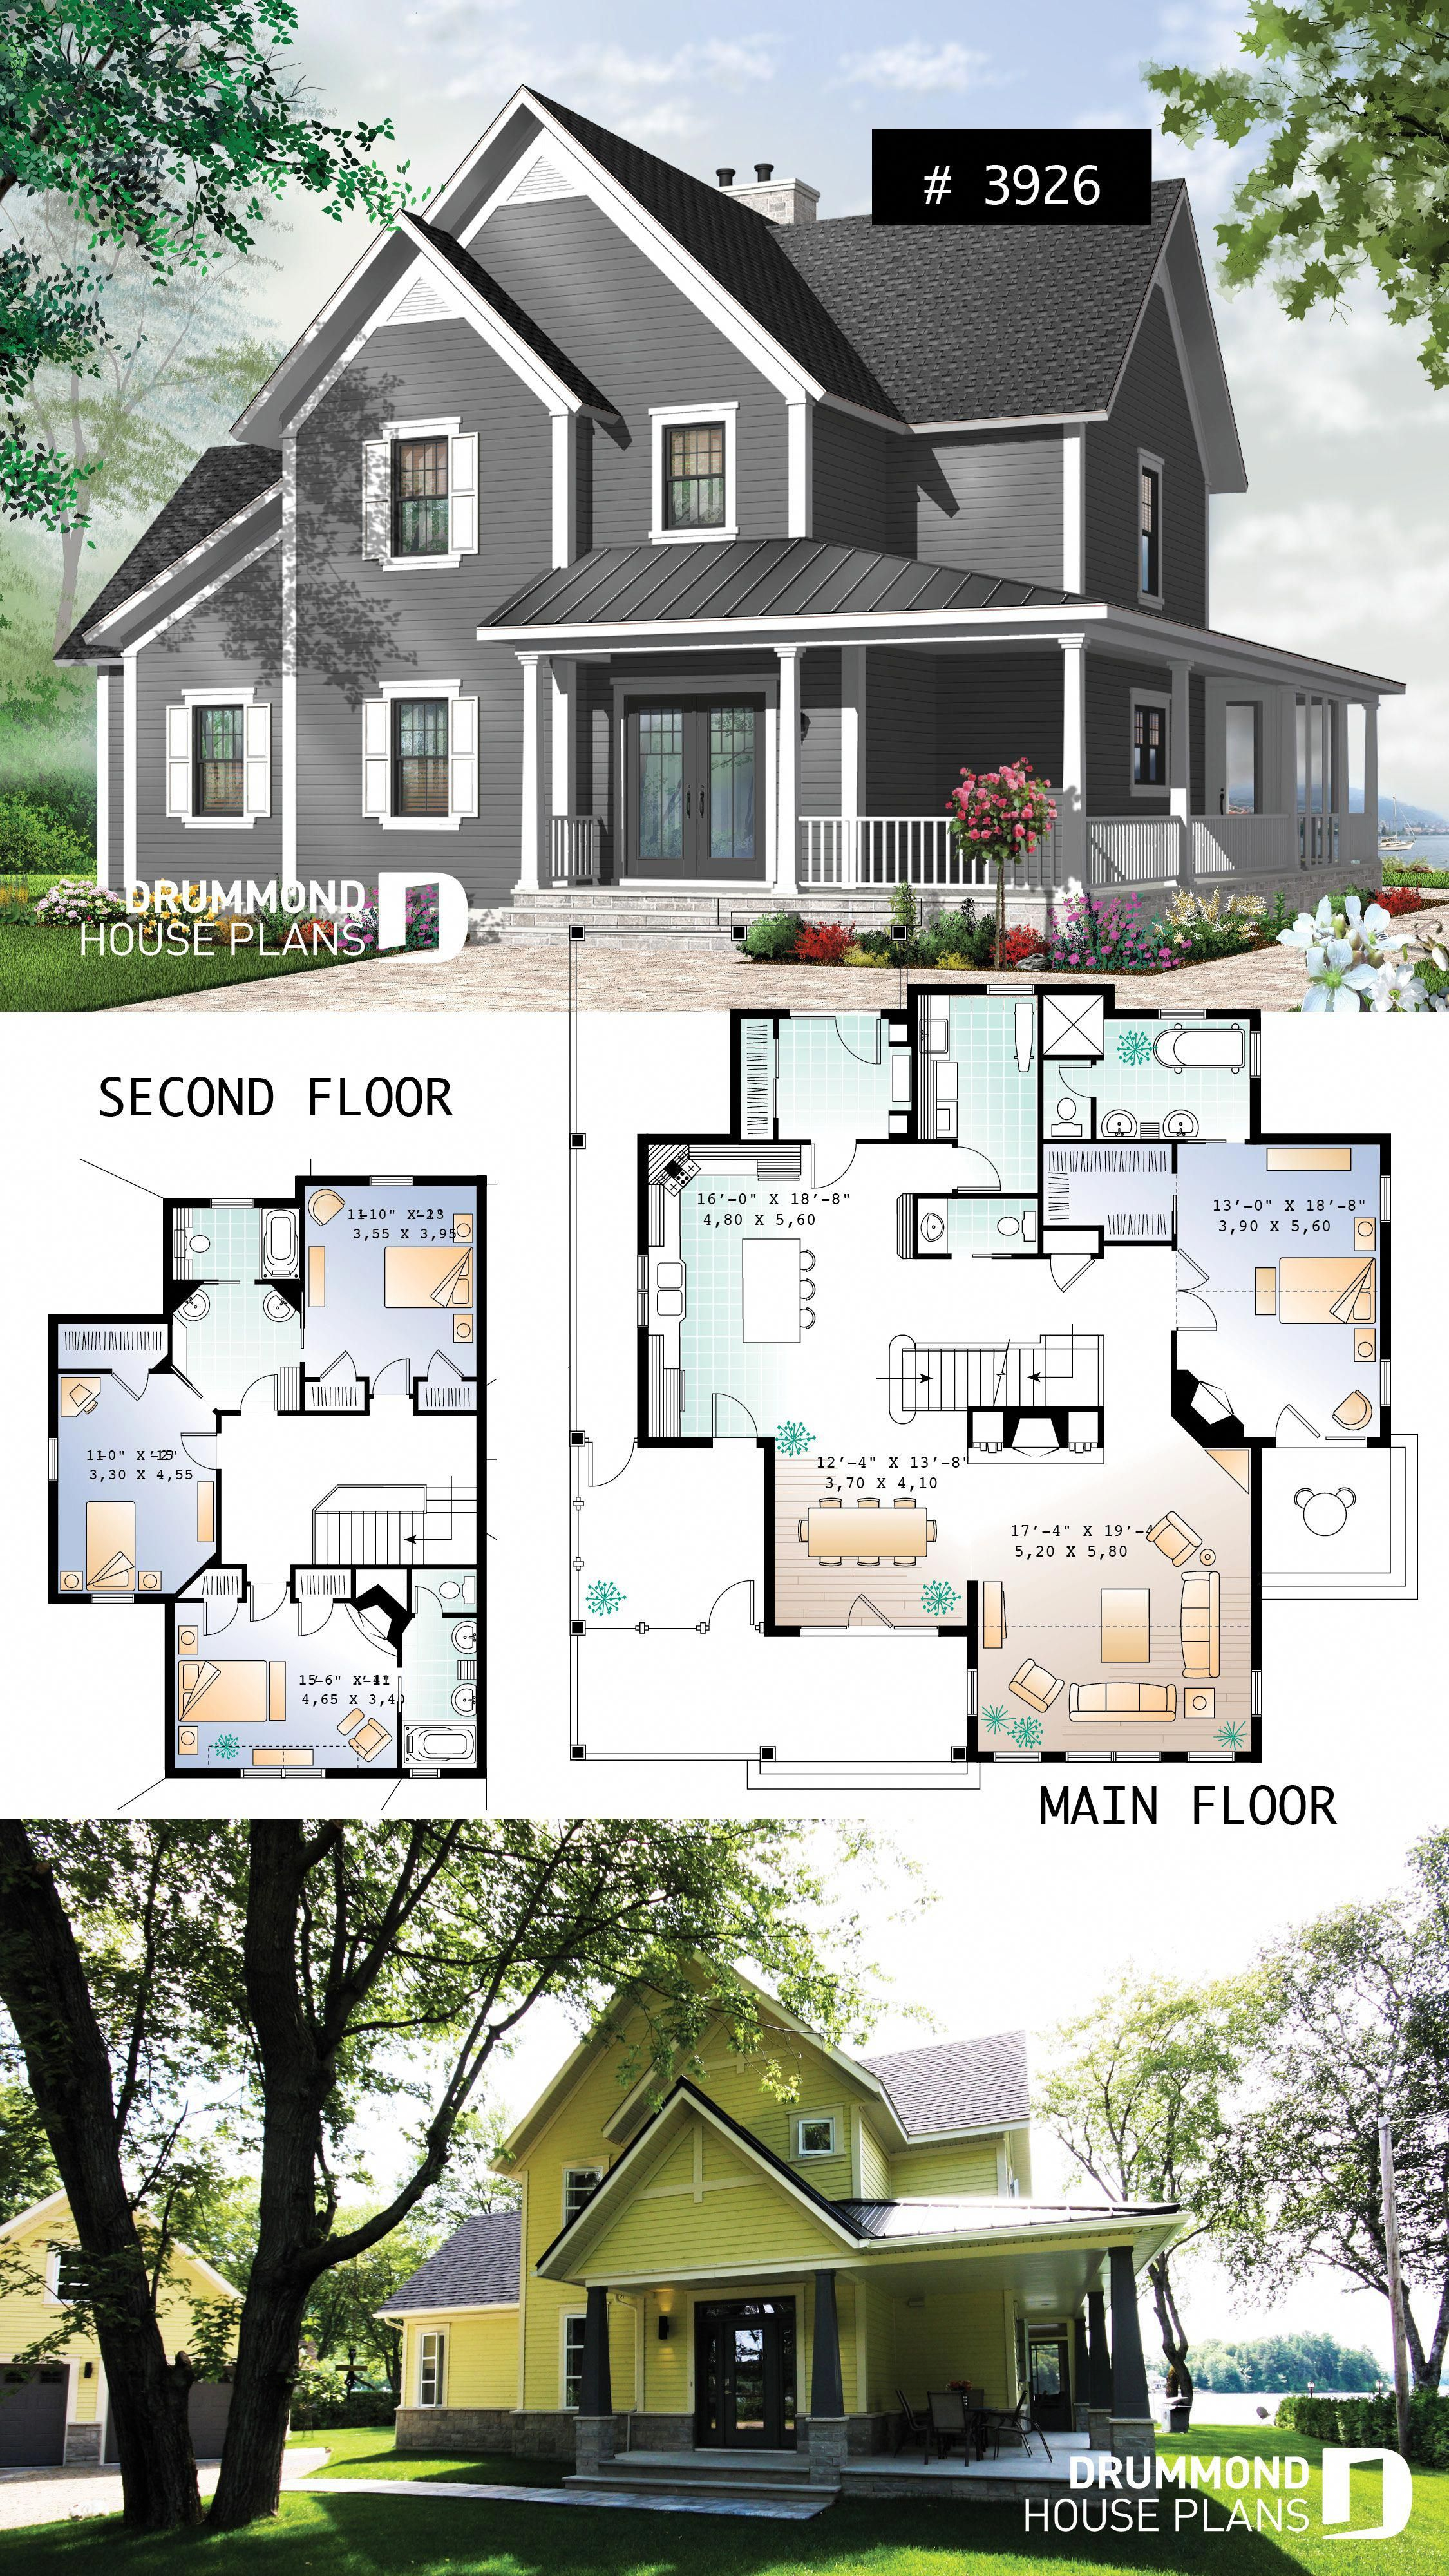 4 Bedroom Small Country Cottage Plan 2 Master Suites One With Private Balcony 3 Fireplaces 3 Bathrooms Cottagebedro Cottage Plan House Plans House Blueprints